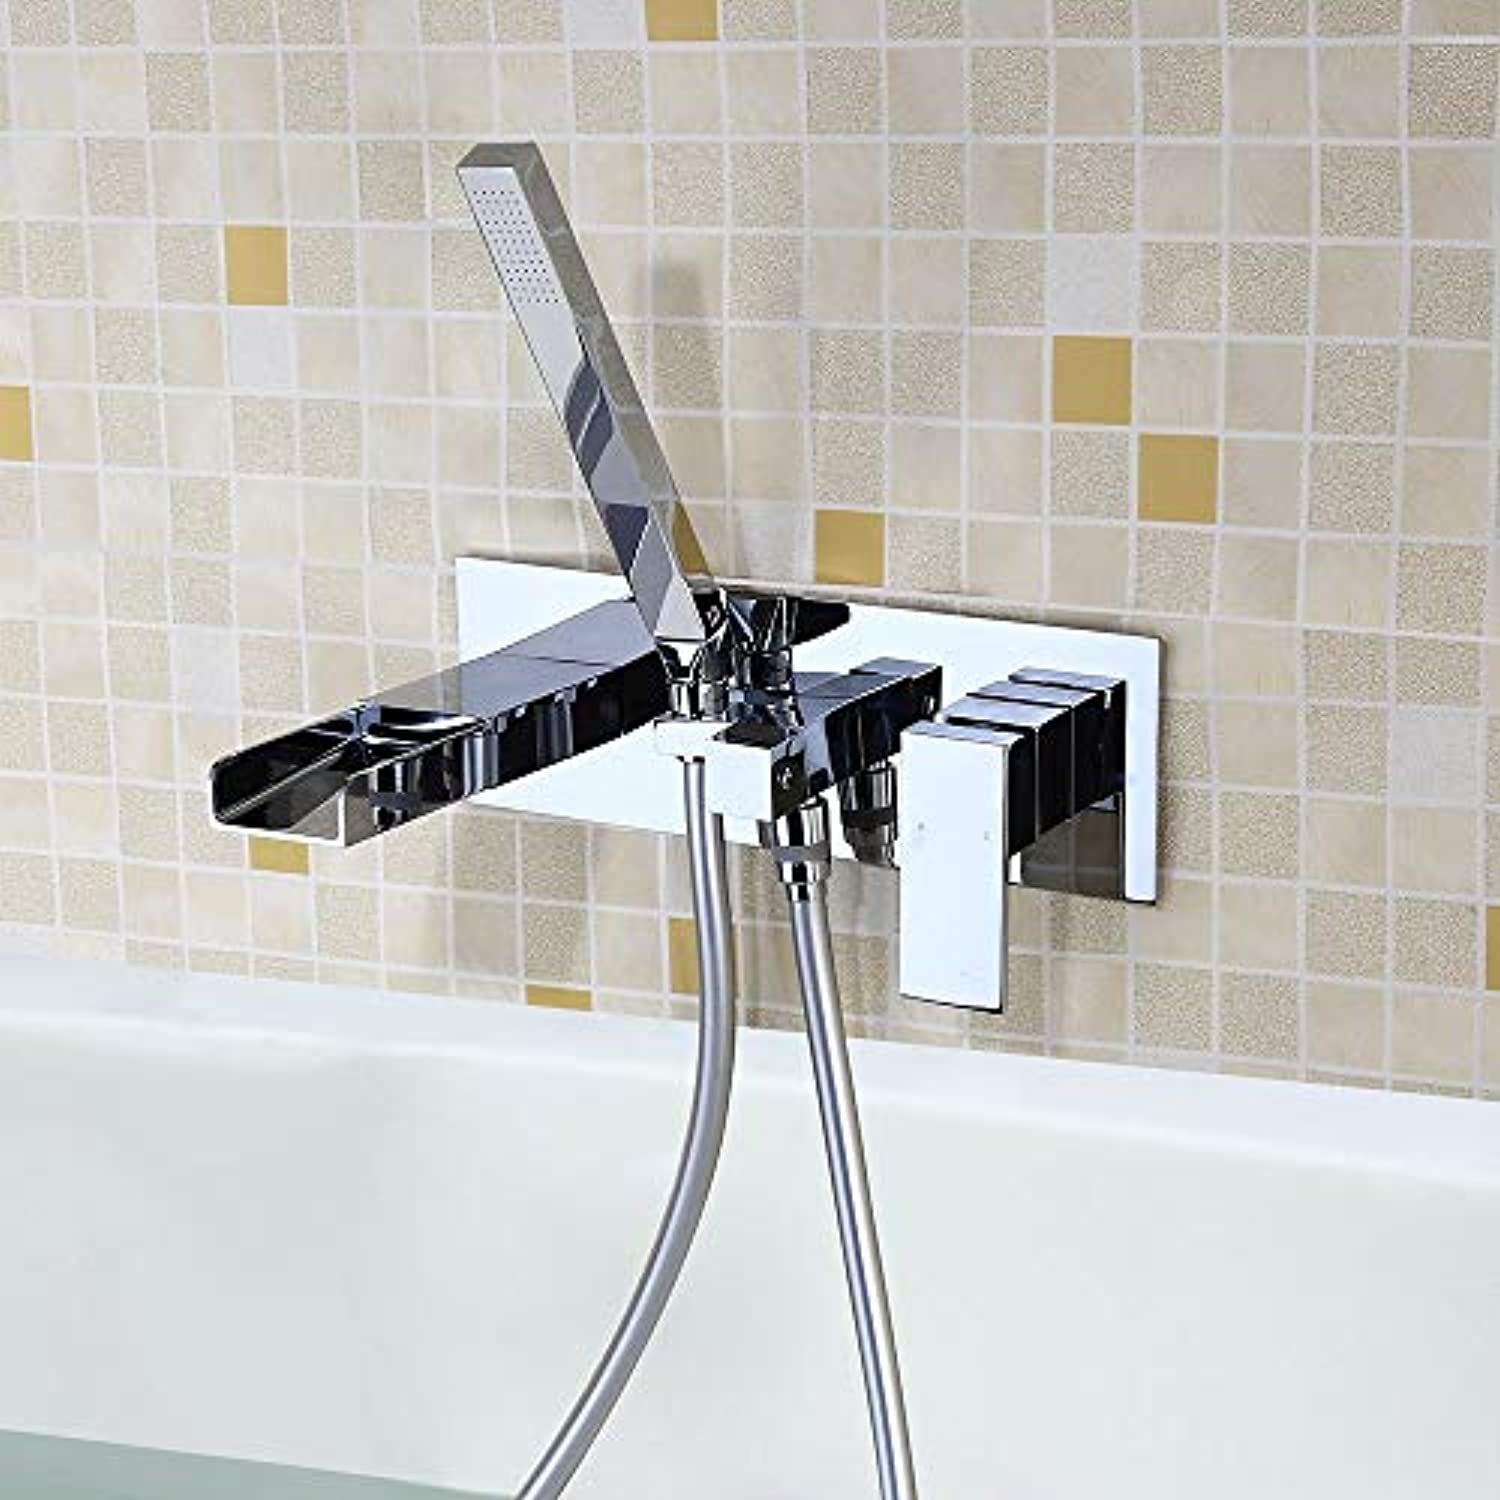 TAP Wasserfall Square Wall Mounted Bath Handheld Solid Brass Chrome